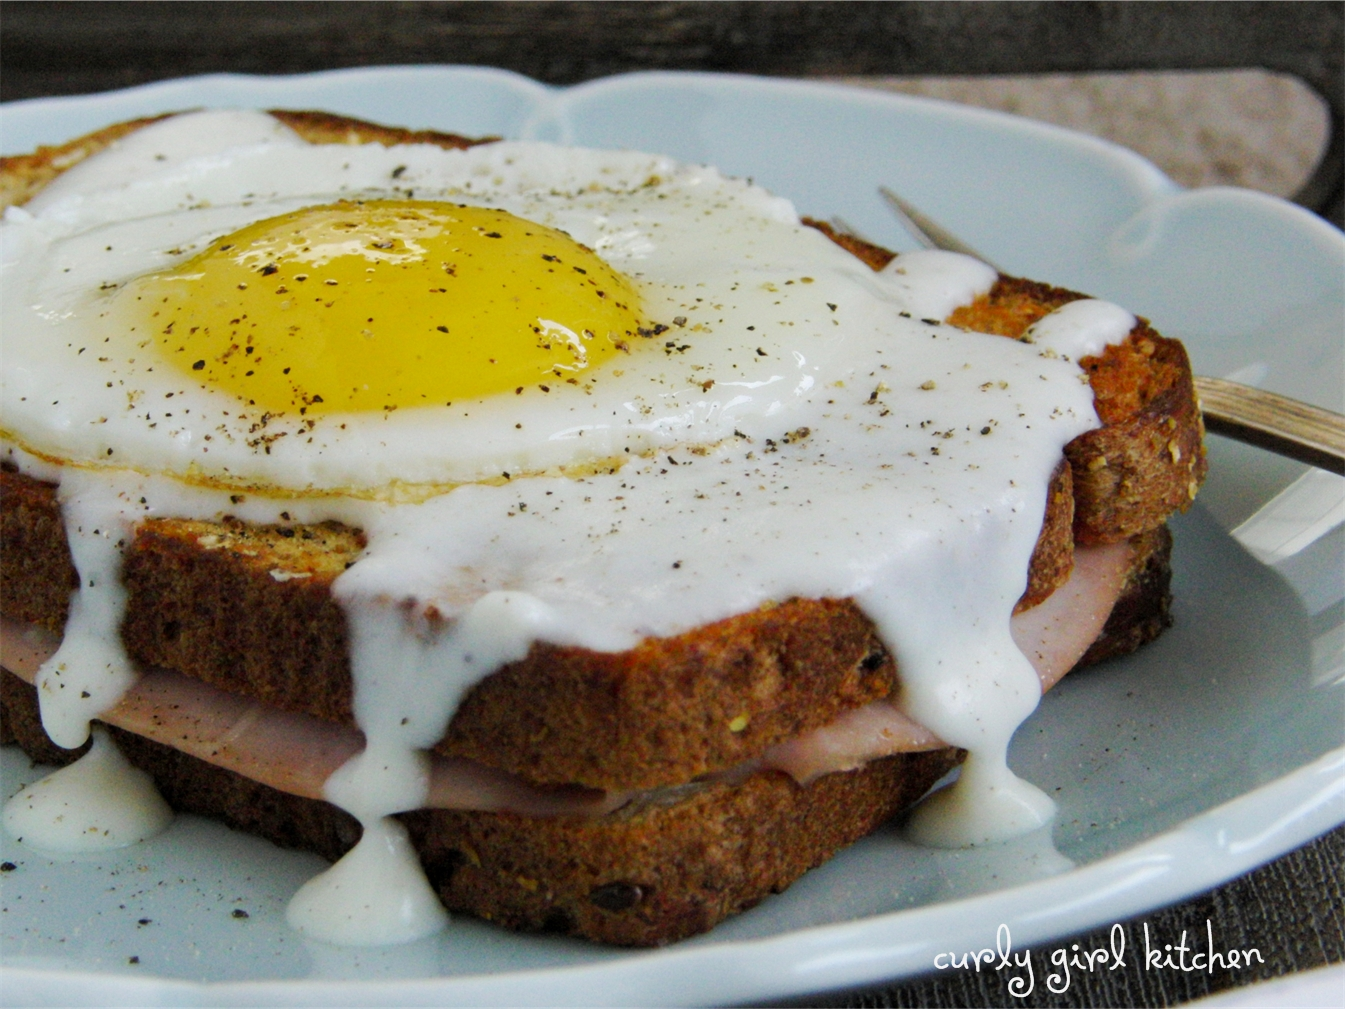 ... Girl Kitchen: Breakfast for Two - Croque Monsieur and Croque Madame